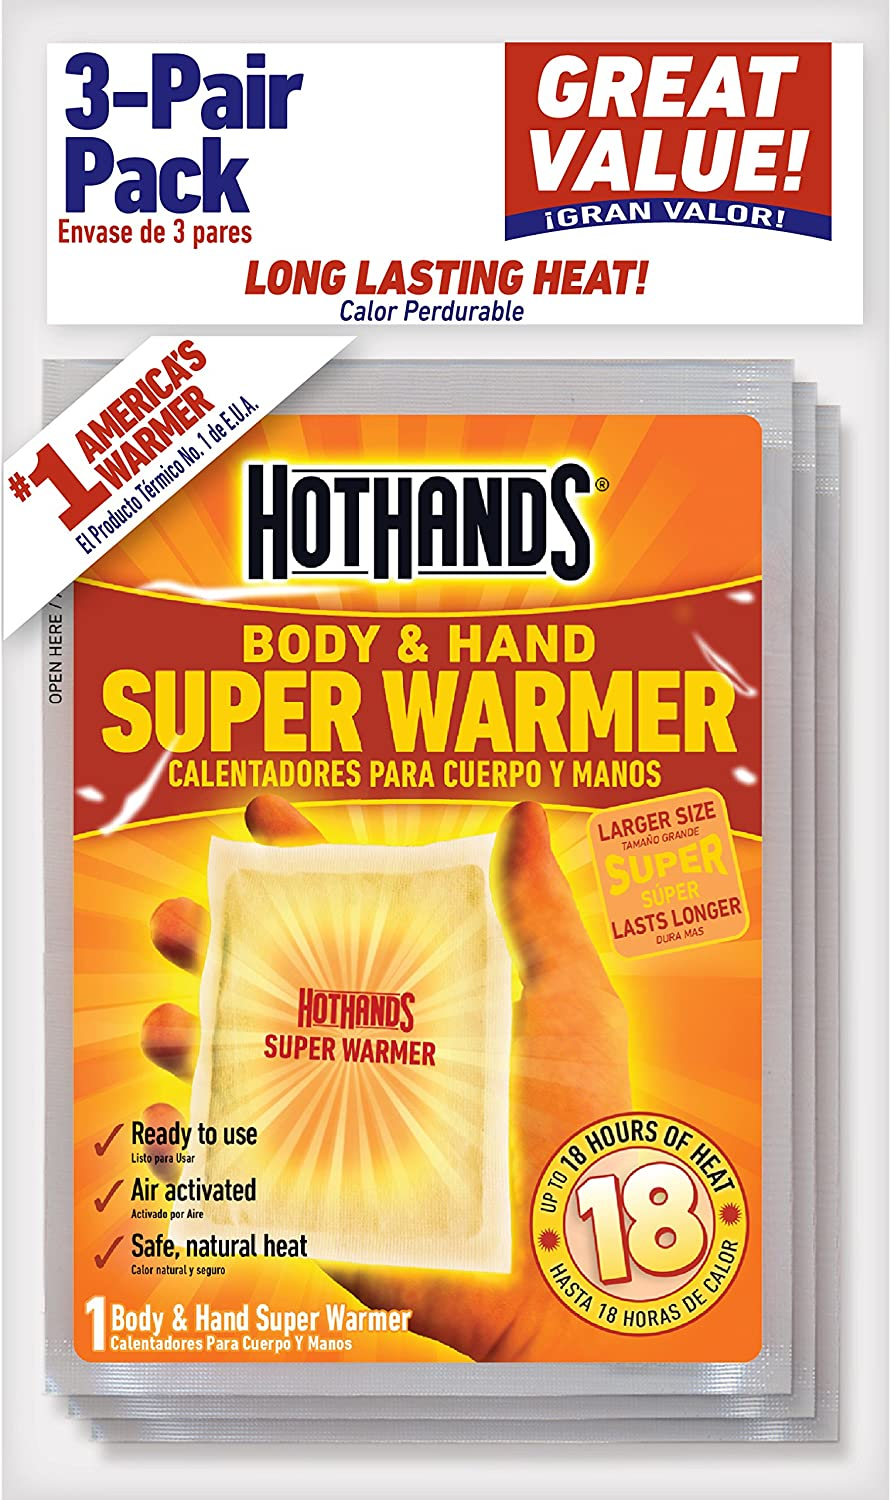 HotHands Body & Hand Super Warmers - Long Lasting Safe Natural Odorless Air Activated Warmers - Up to 18 Hours of Heat - 3 Individual Warmers